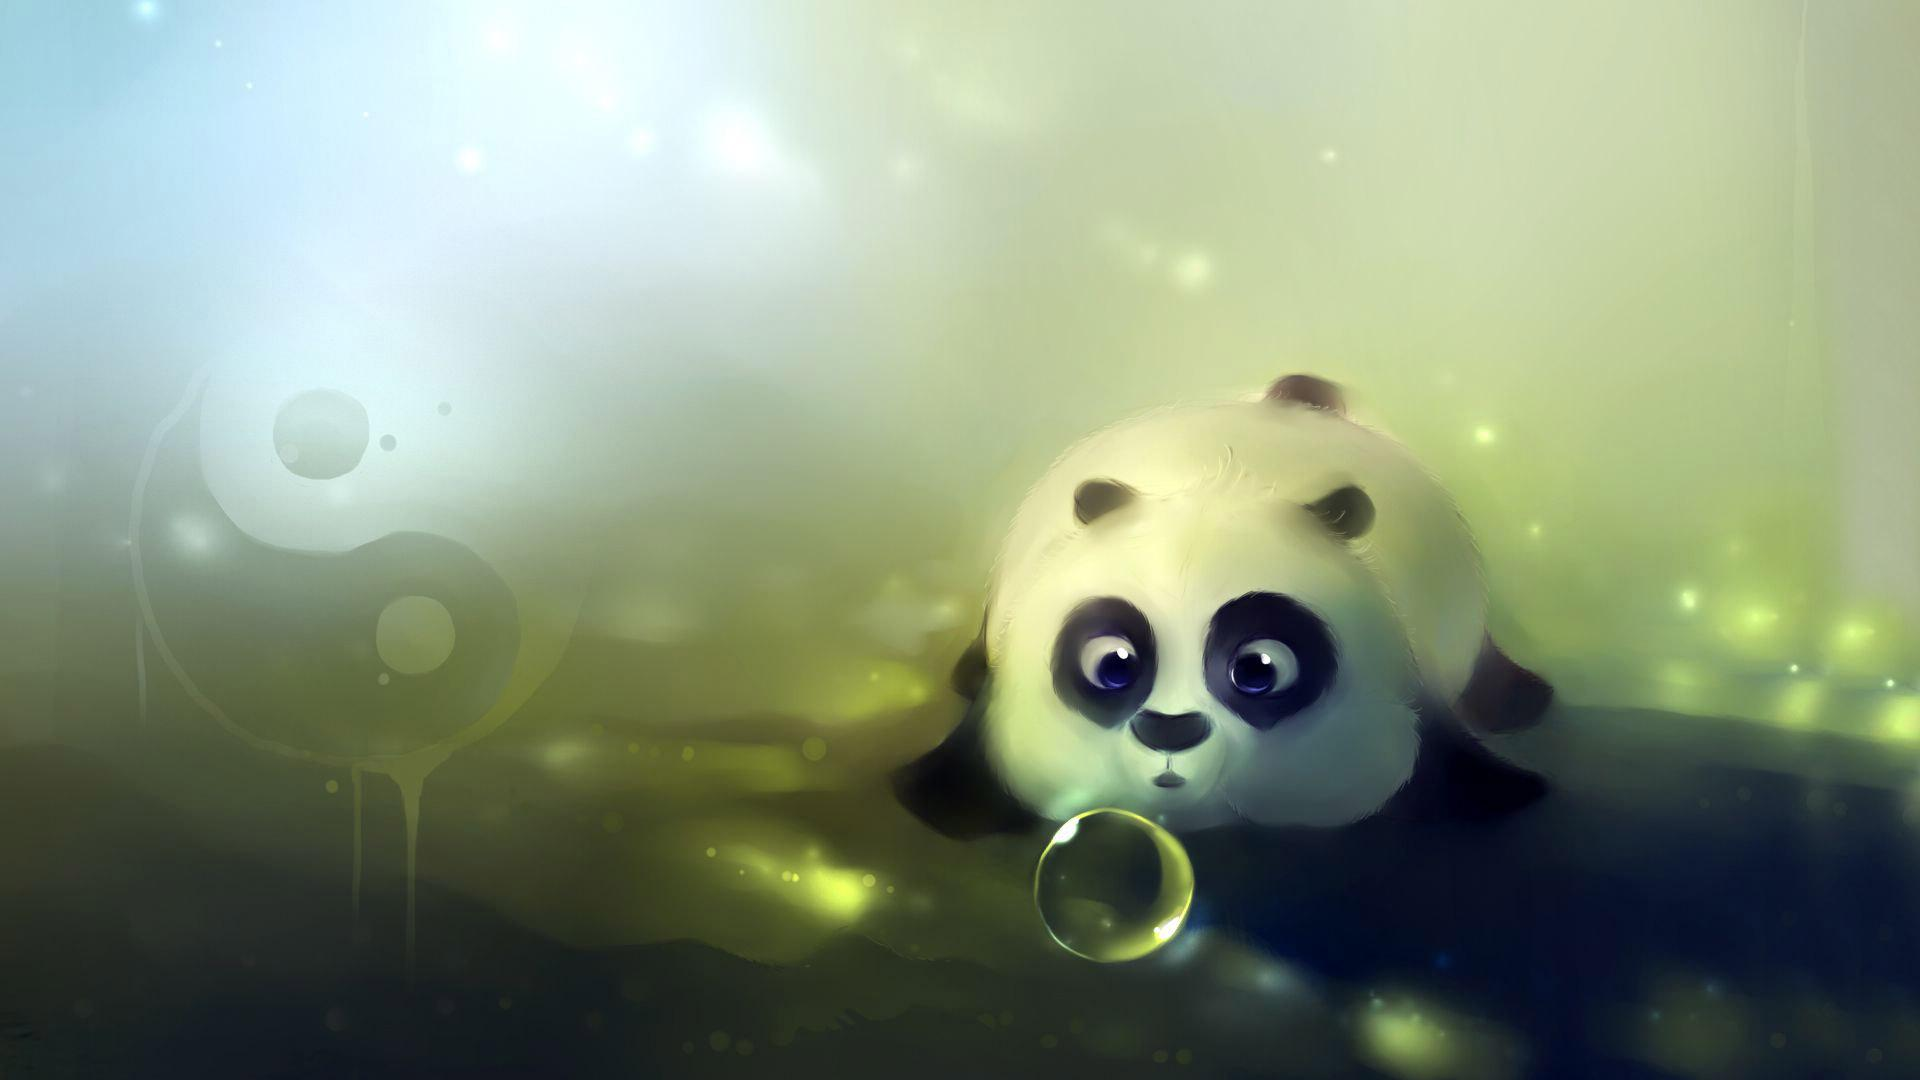 Cute Laptop Wallpapers 1920x1080